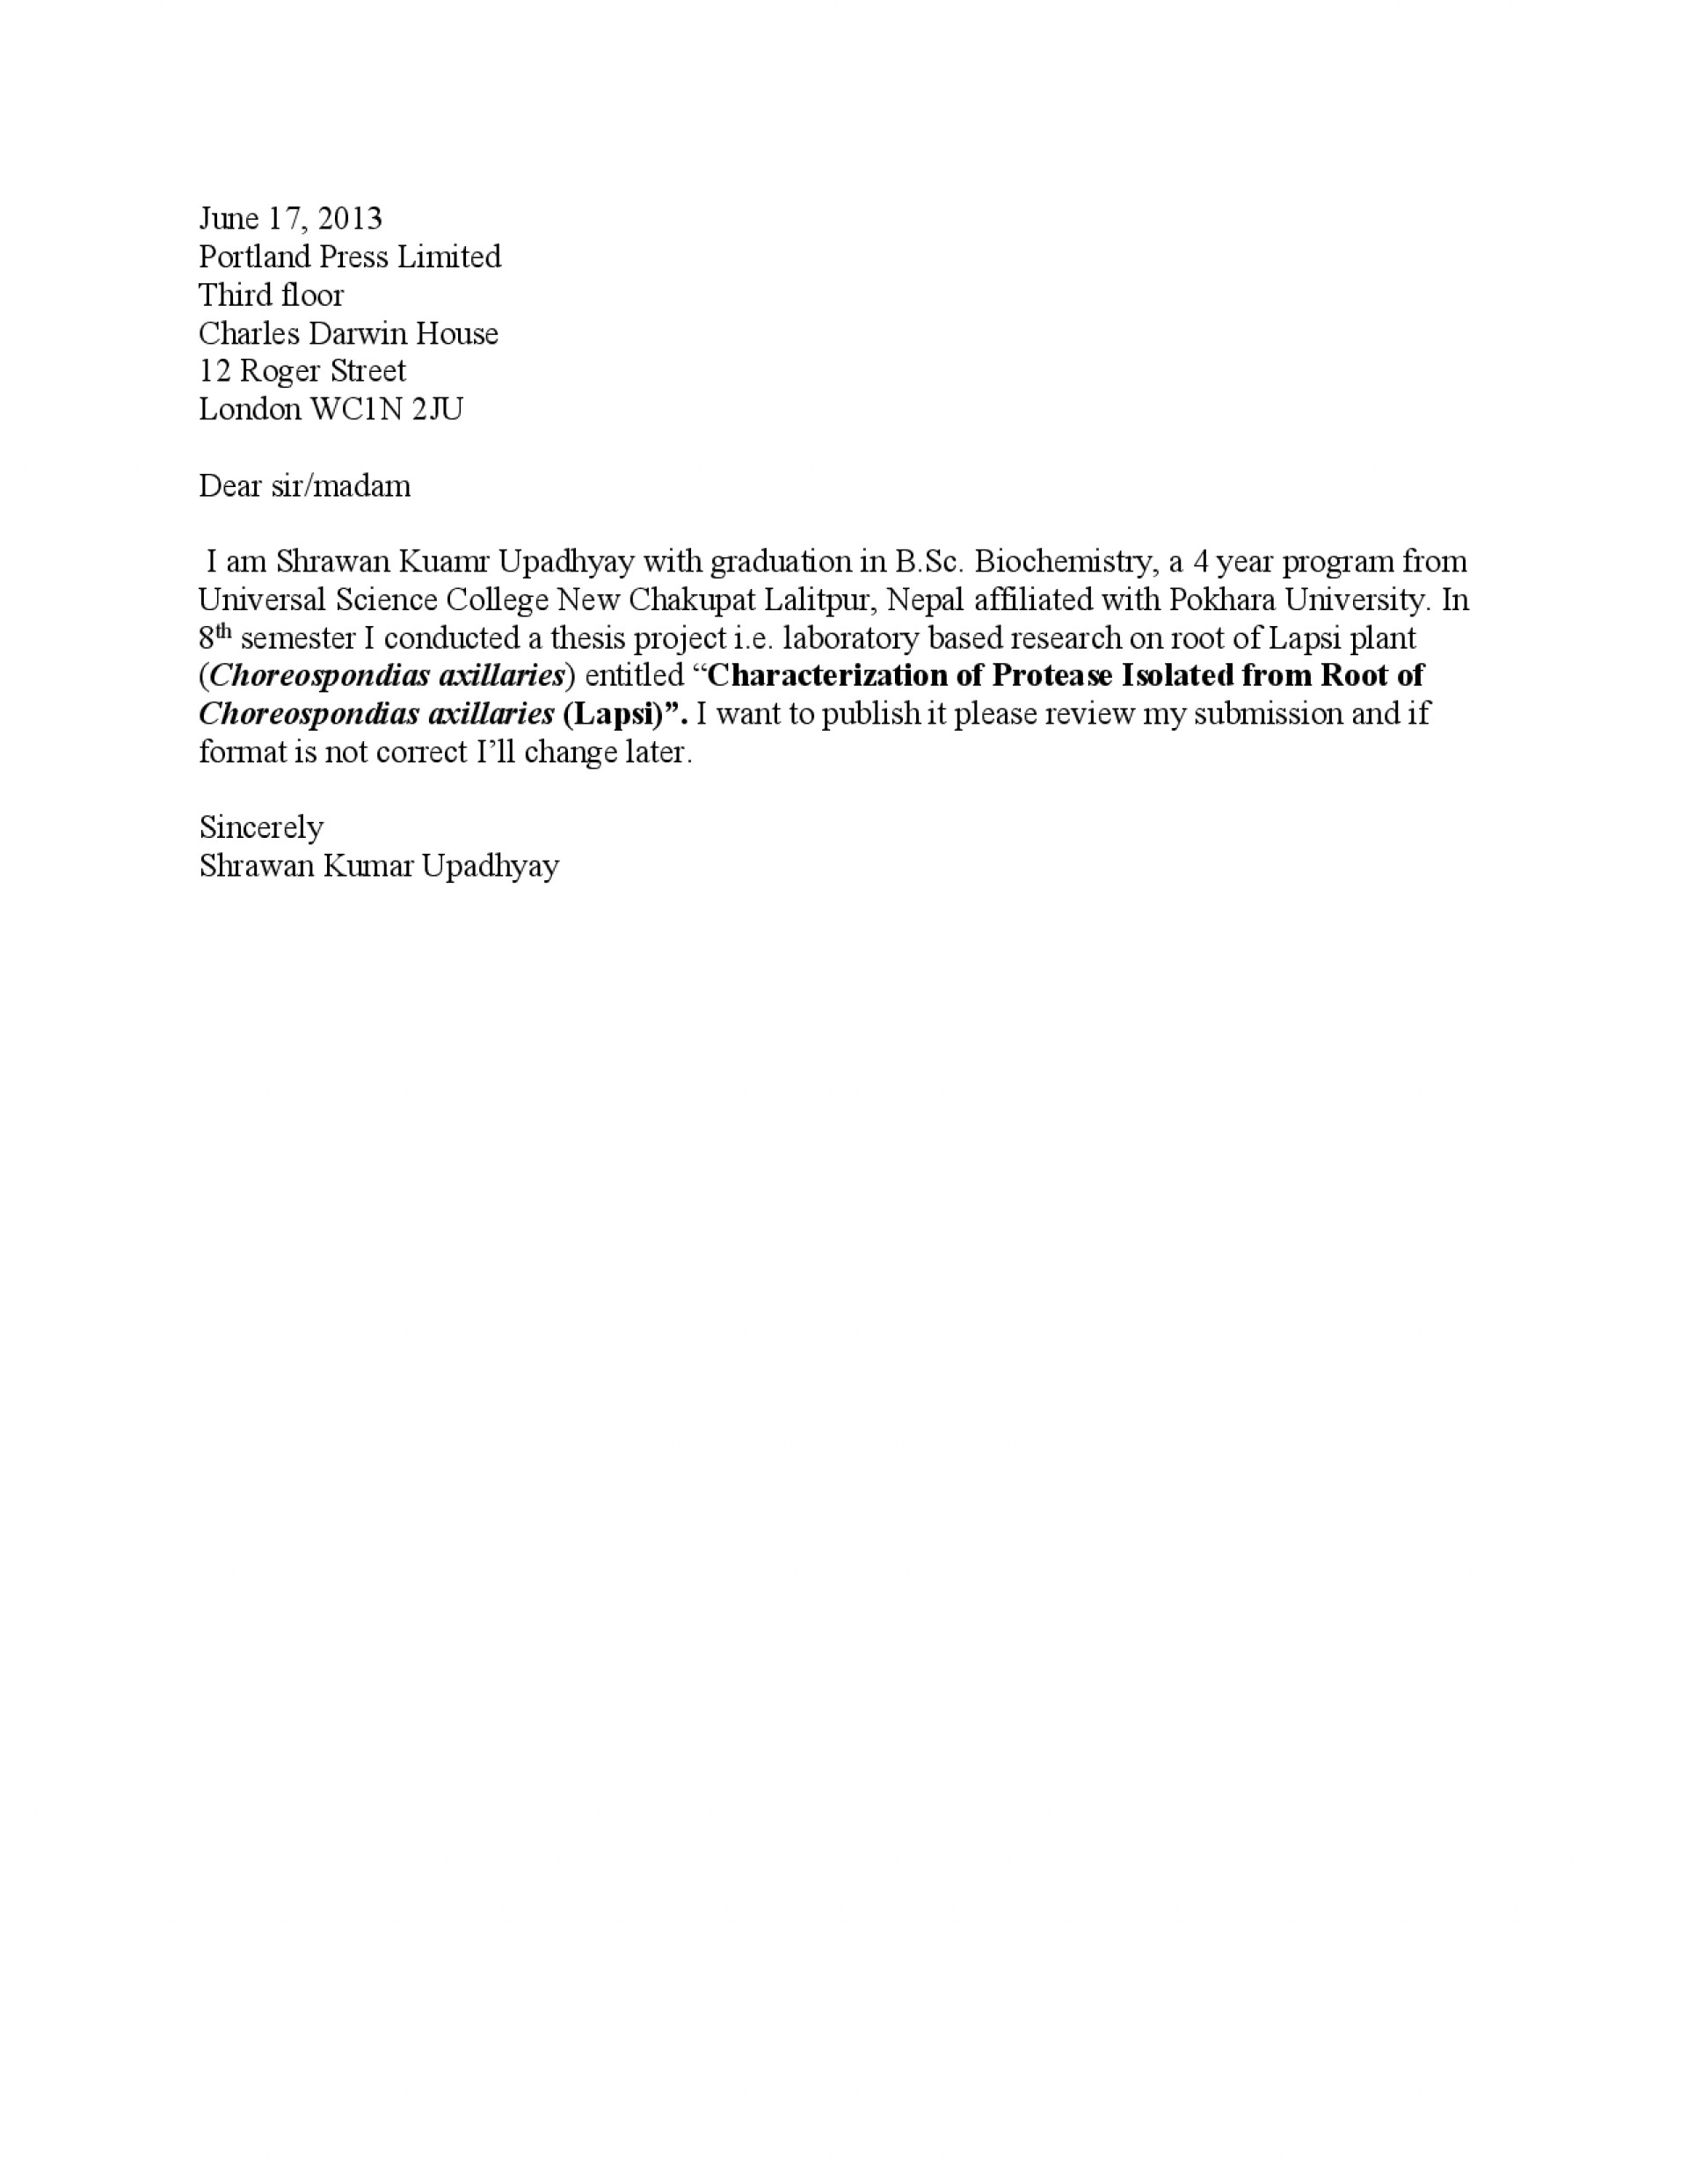 016 Cover Letter Research Paper Template For Sensational 1920